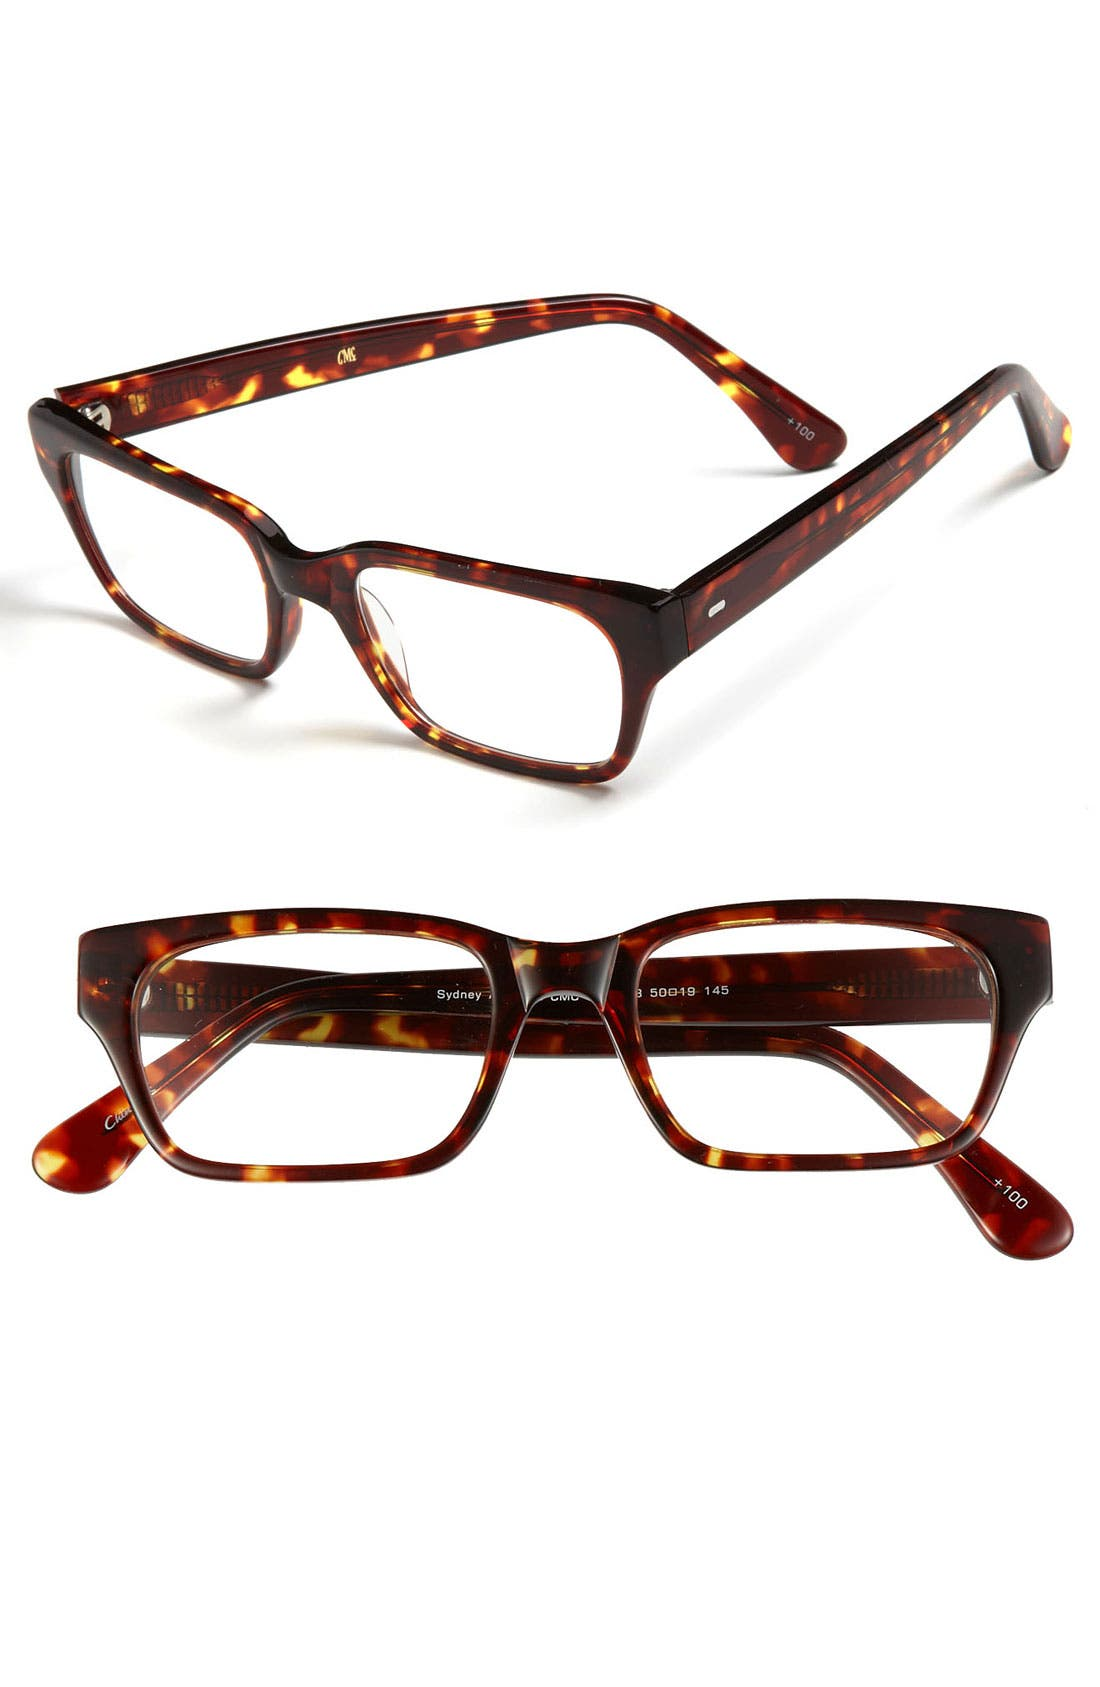 Main Image - Corinne McCormack 'Sydney' 50mm Reading Glasses (Online Only) (2 for $88)